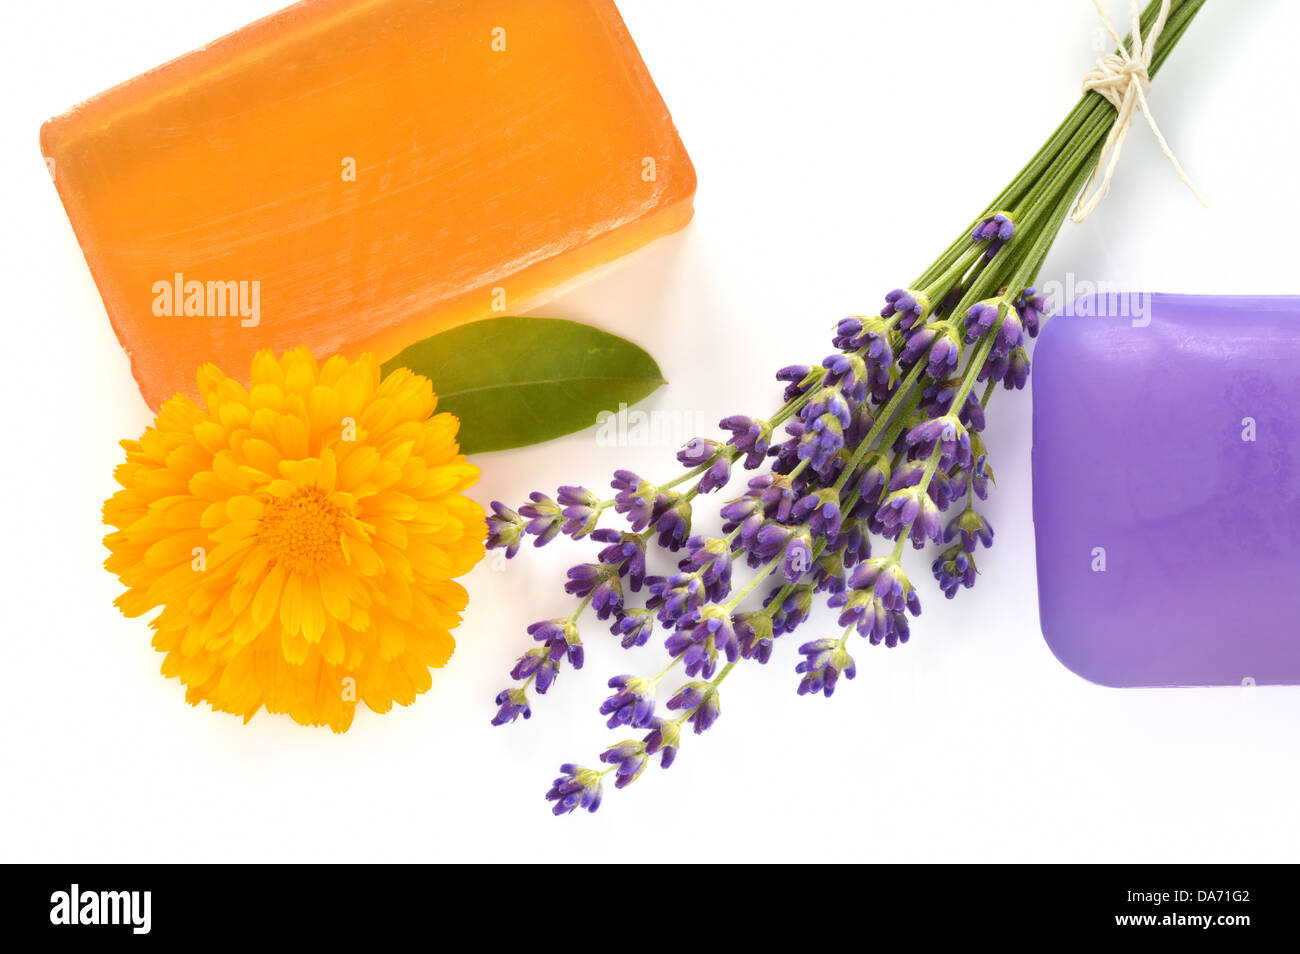 Handmade glycerin soaps with flowers on white background. Natural beauty care - lavender and marigold (Calendula - Stock Image